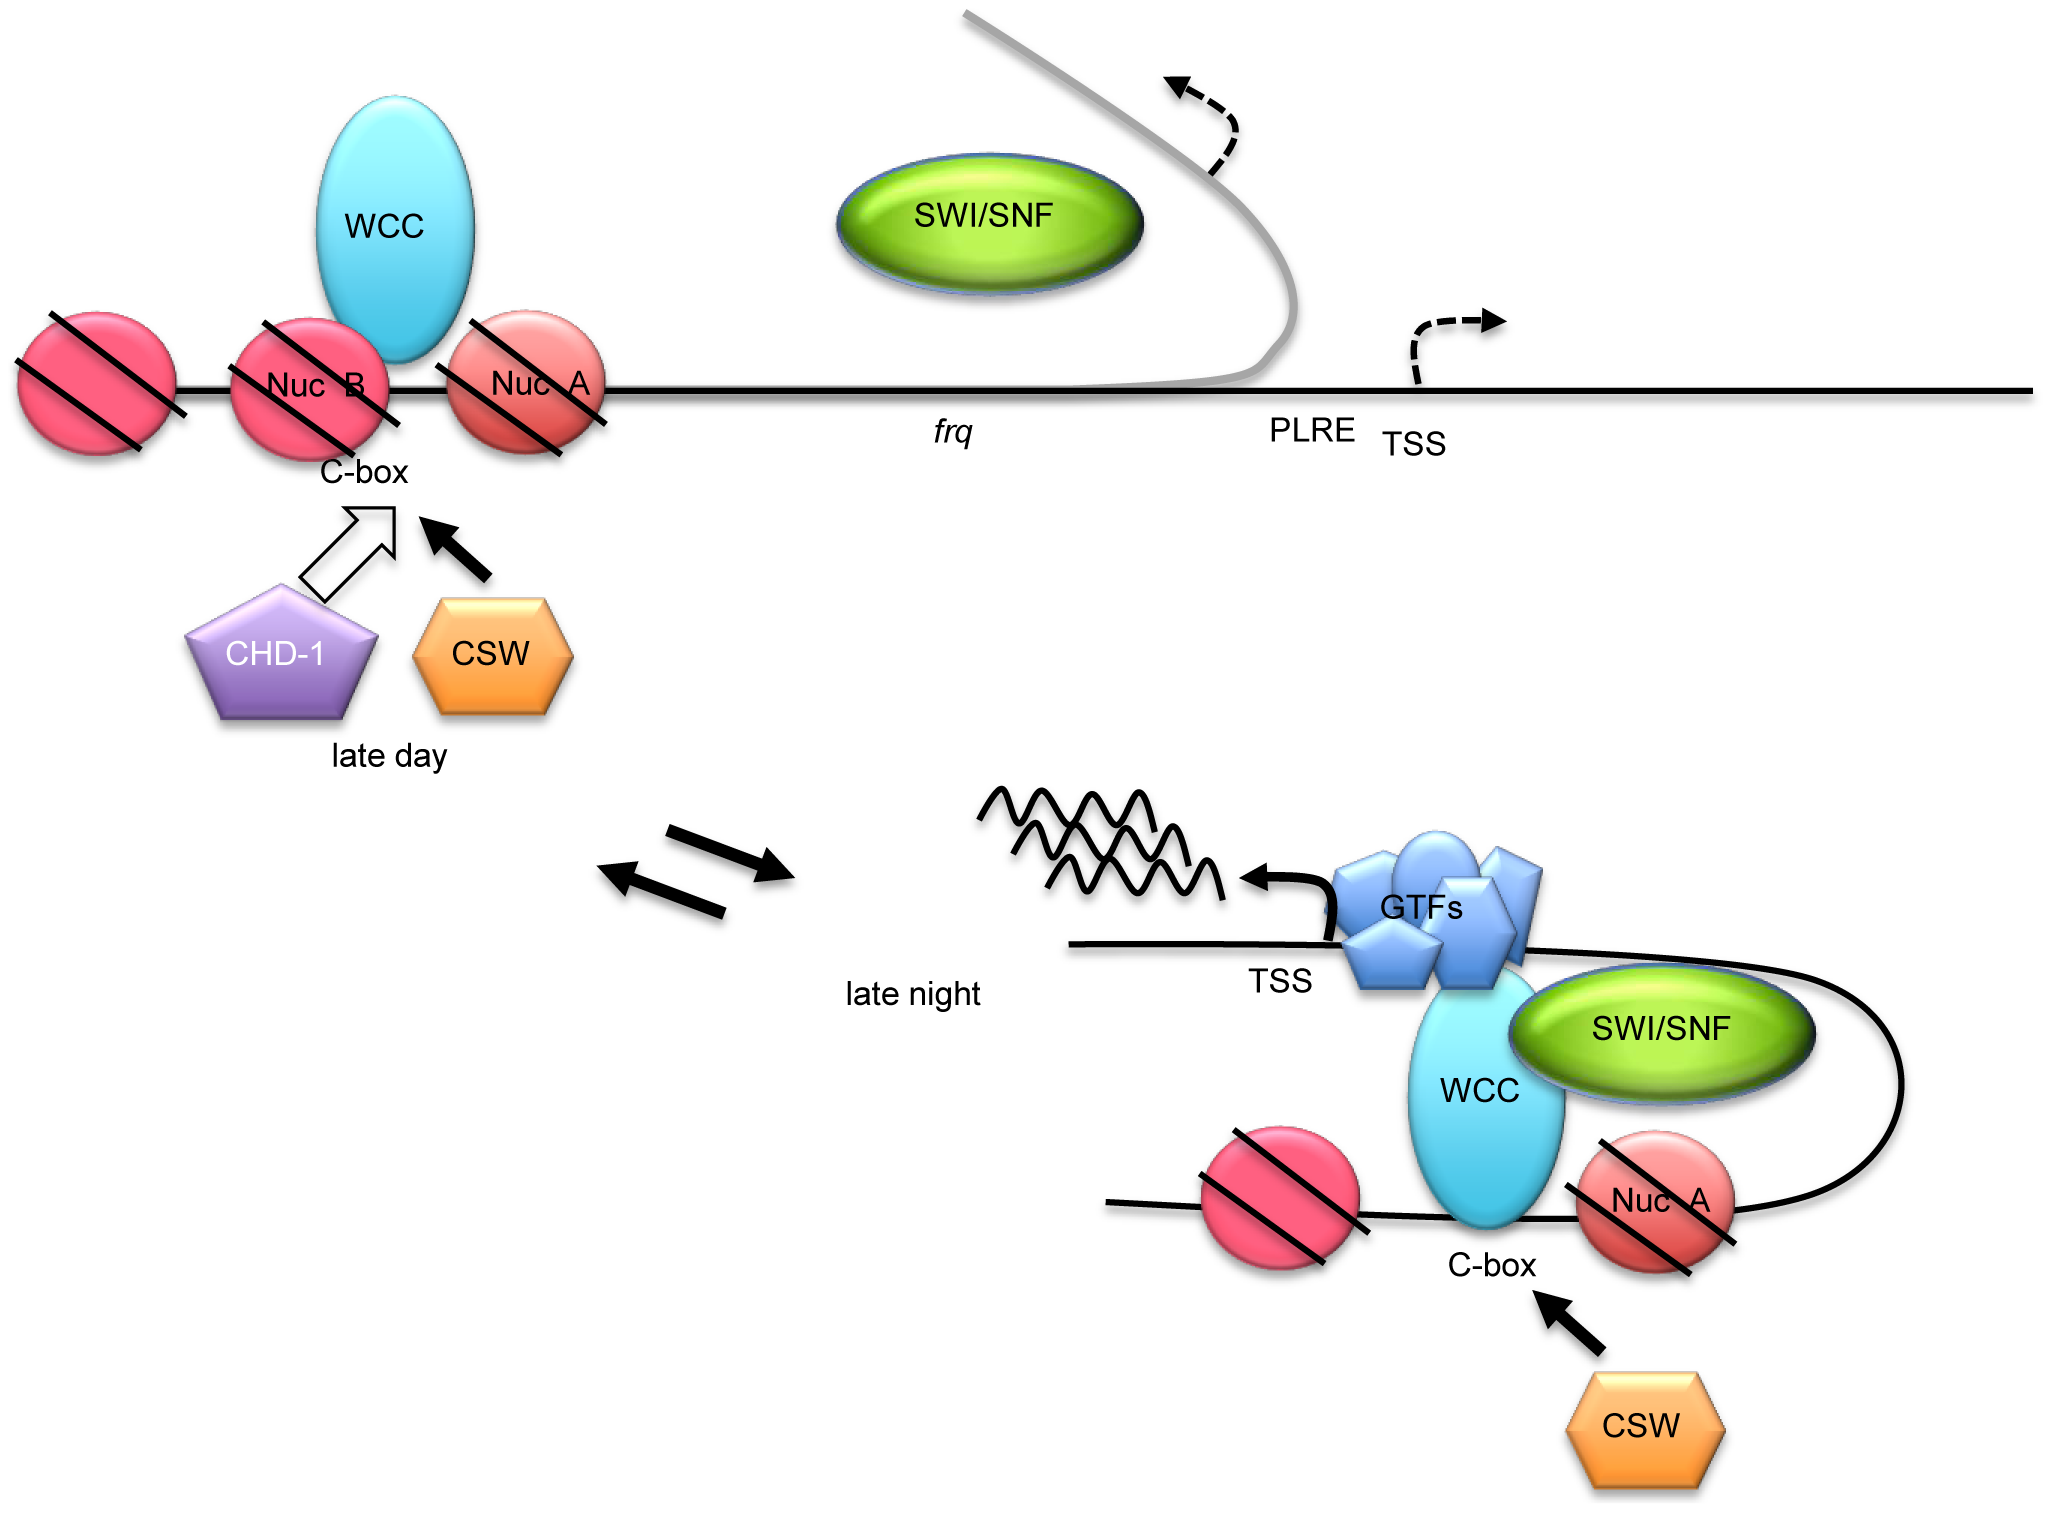 A working model for WC-1-dependent recruitment of SWI/SNF to initiate <i>frq</i> transcription.